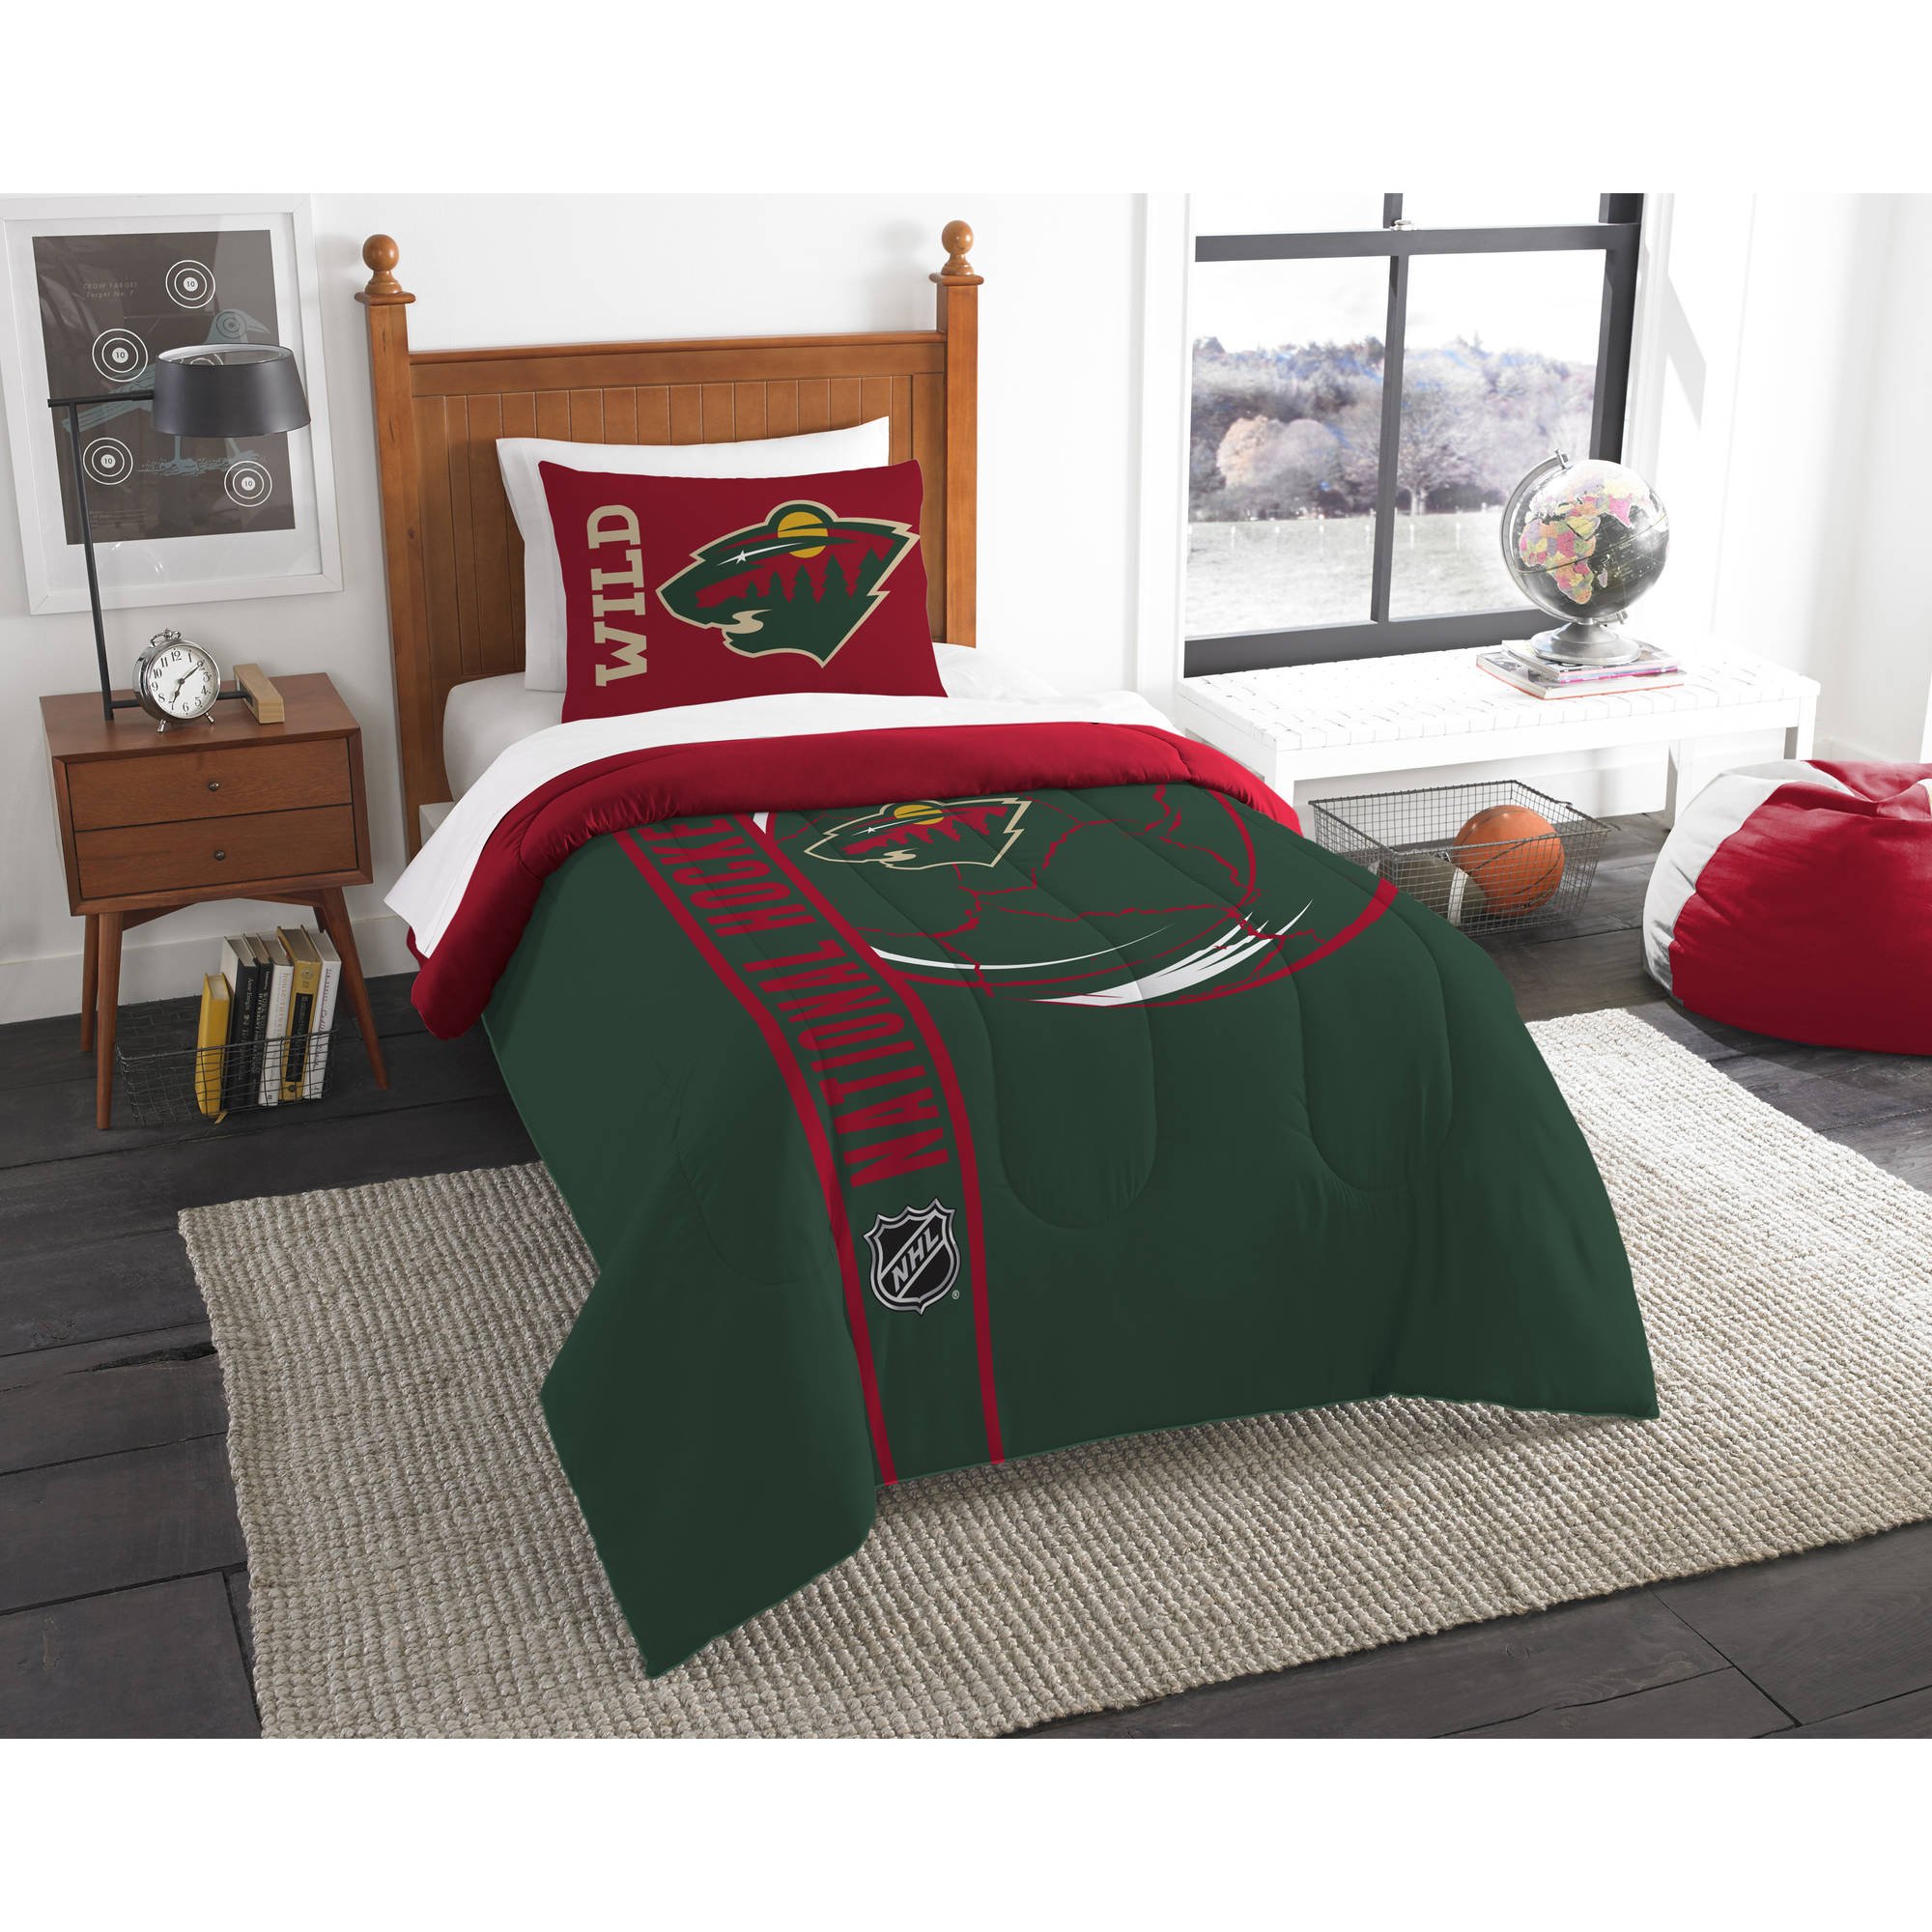 NHL Minnesota Wild Printed Twin Comforter and Sham Set